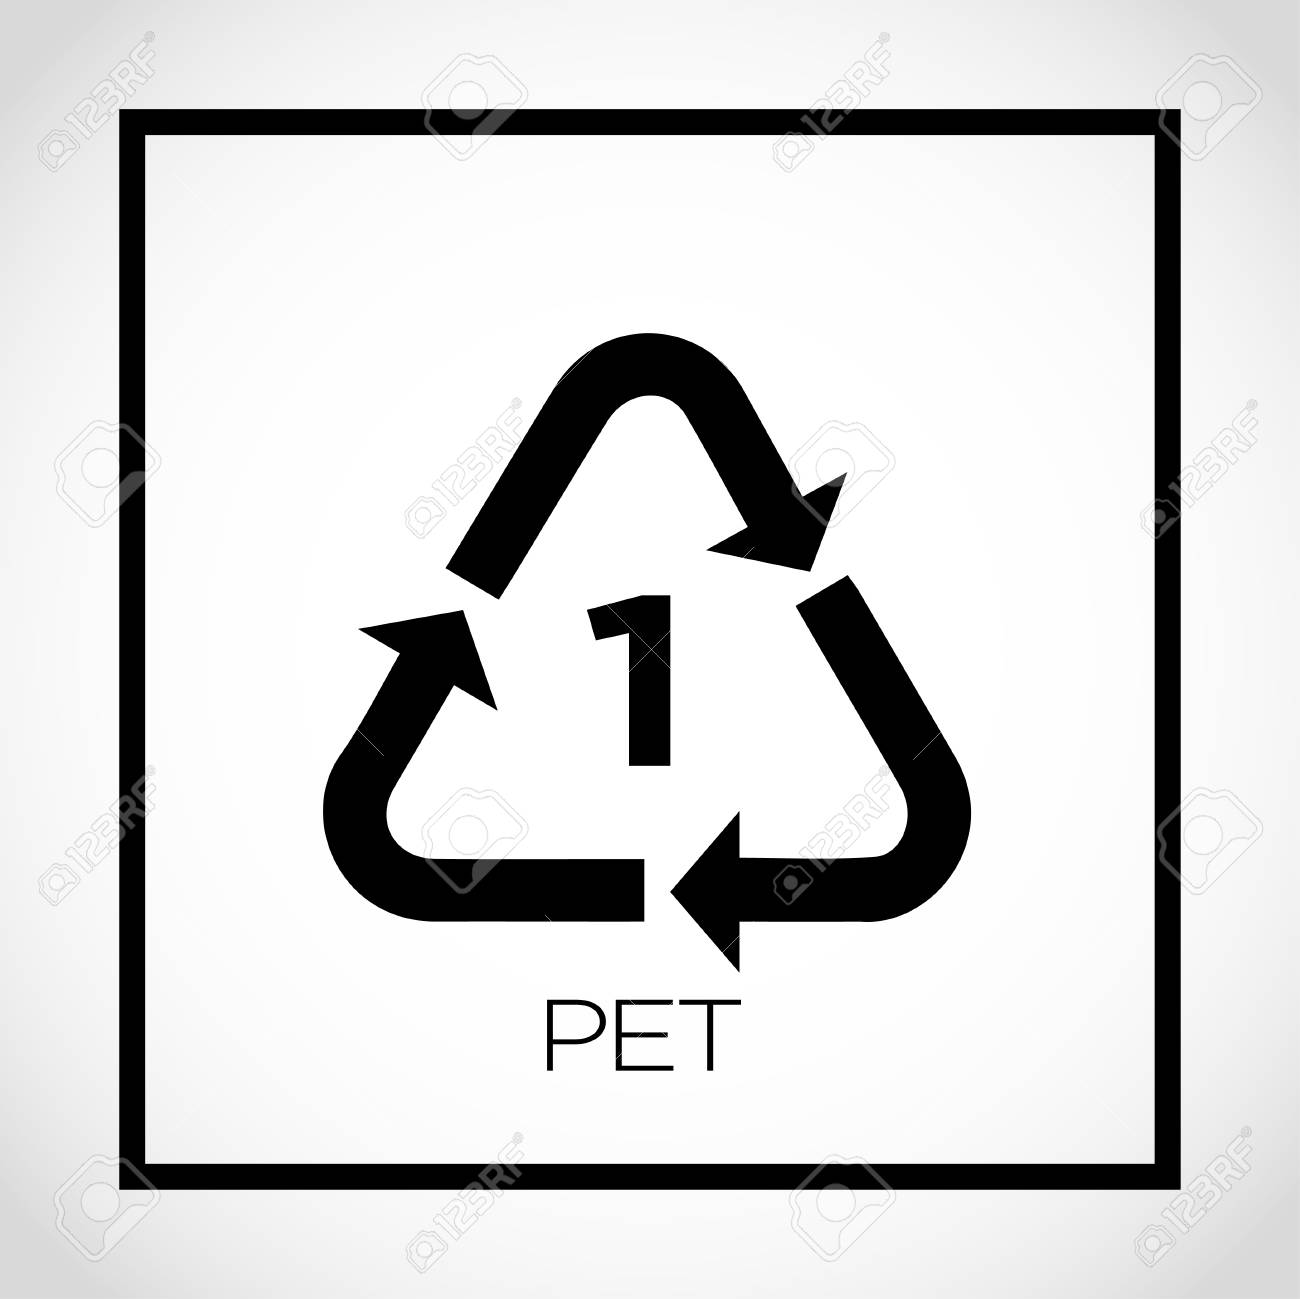 1 Pet Packaging Pictorial Marking For Handling Of Goods Iso